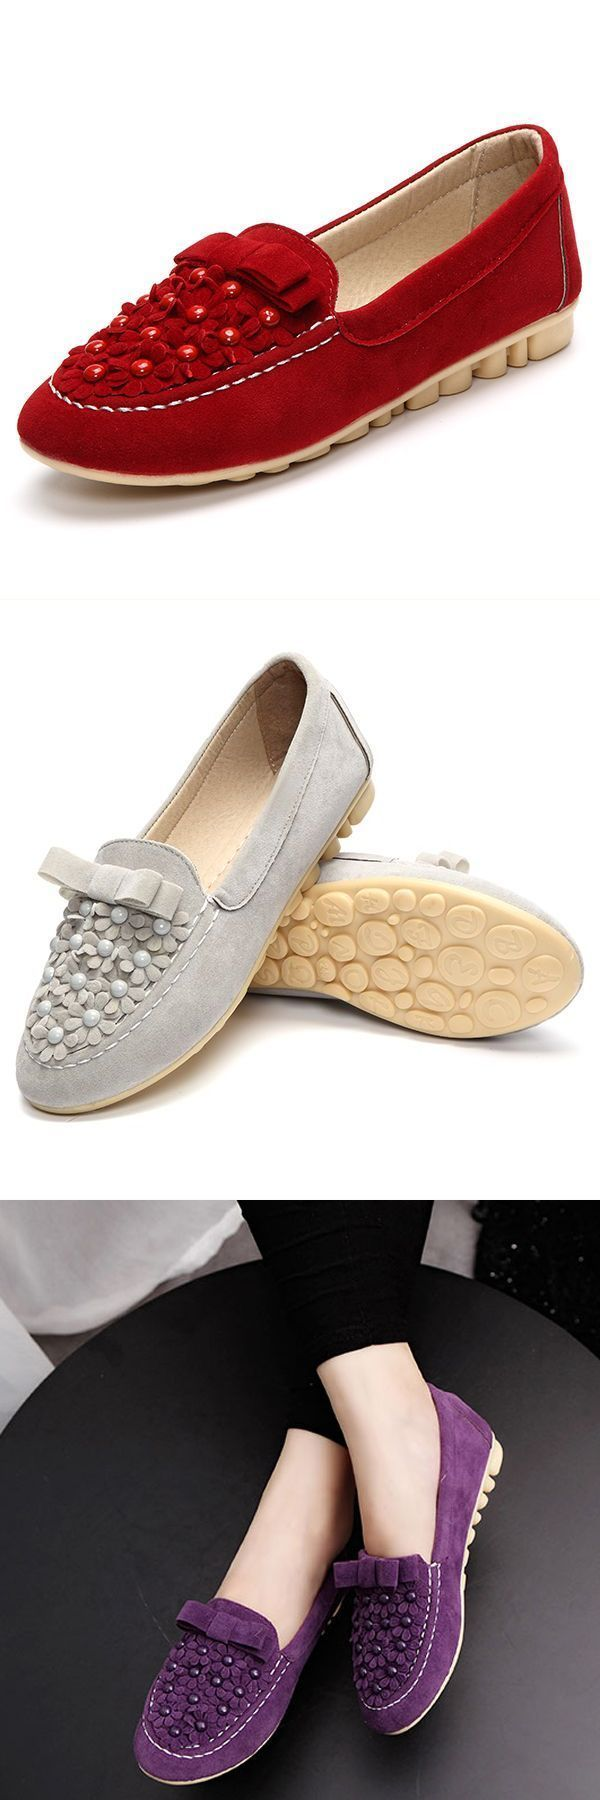 Flat navy loafers women casual shoes comfortable outdoor suede slip on flat loafers #flat #pointed #loafers #flat #shoe #chanel #flat #shoe #socks #grey #flat #loafers